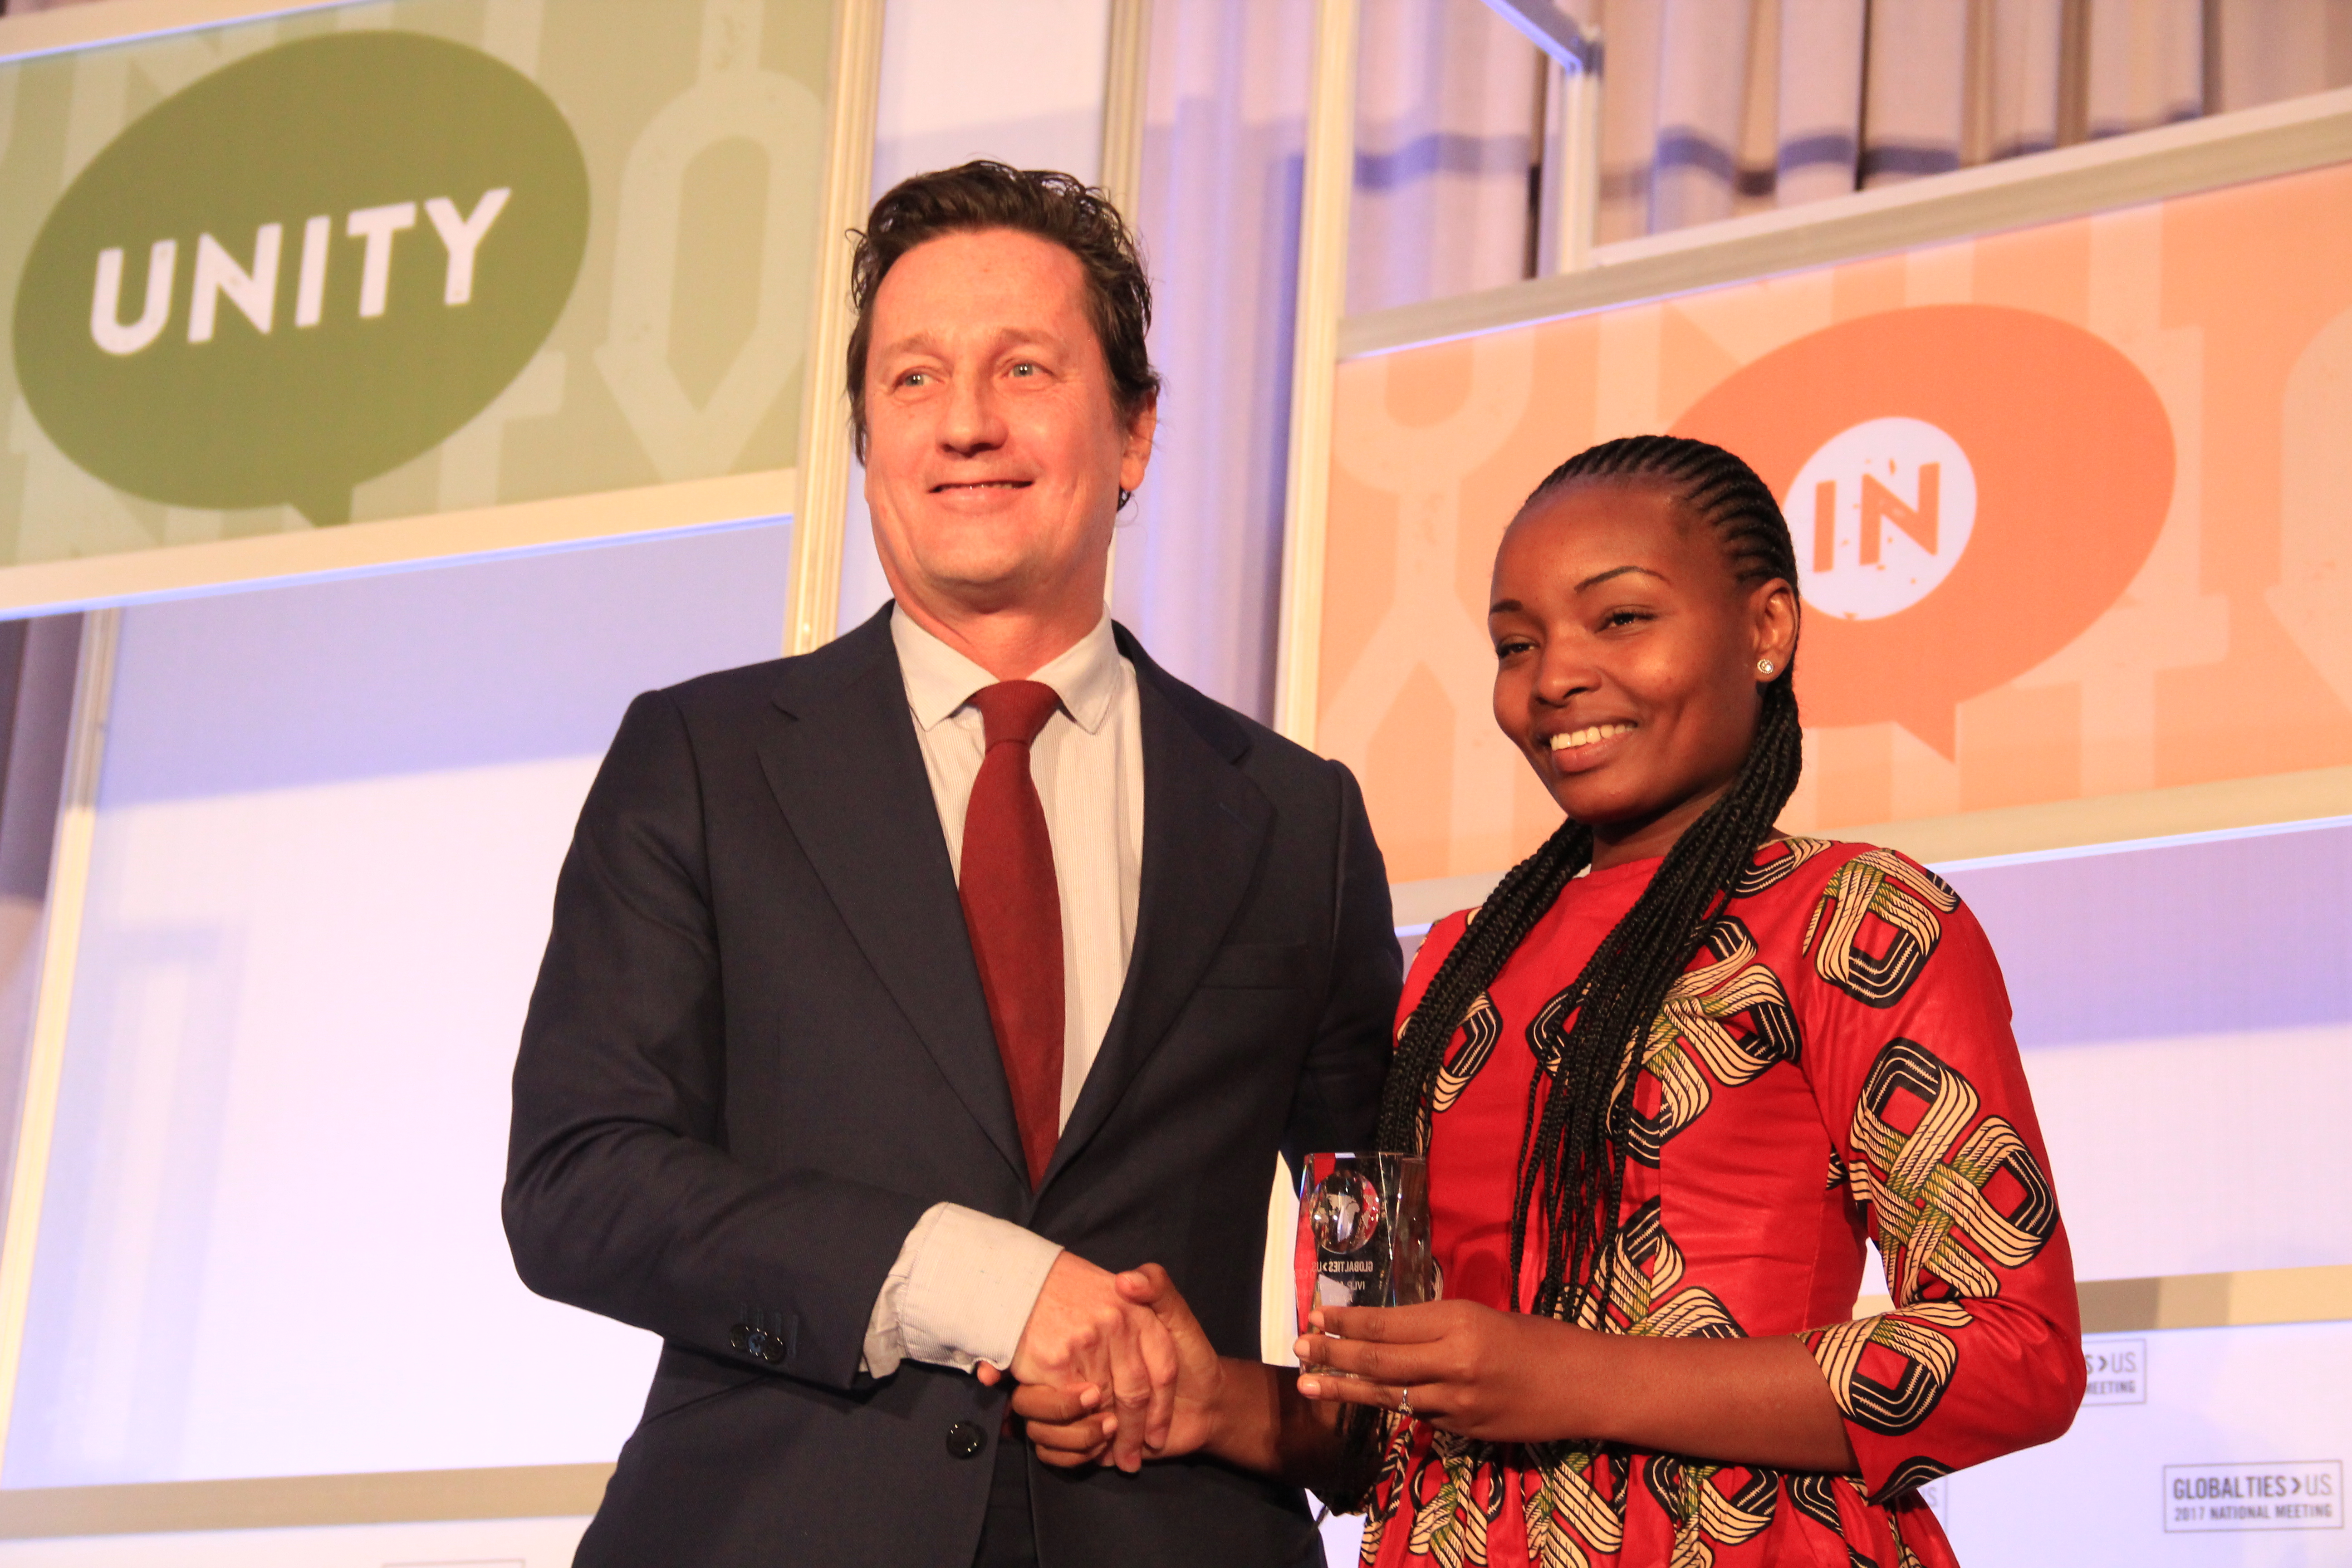 Rebecca Gyumi Receives Award for Social Innovation and Change